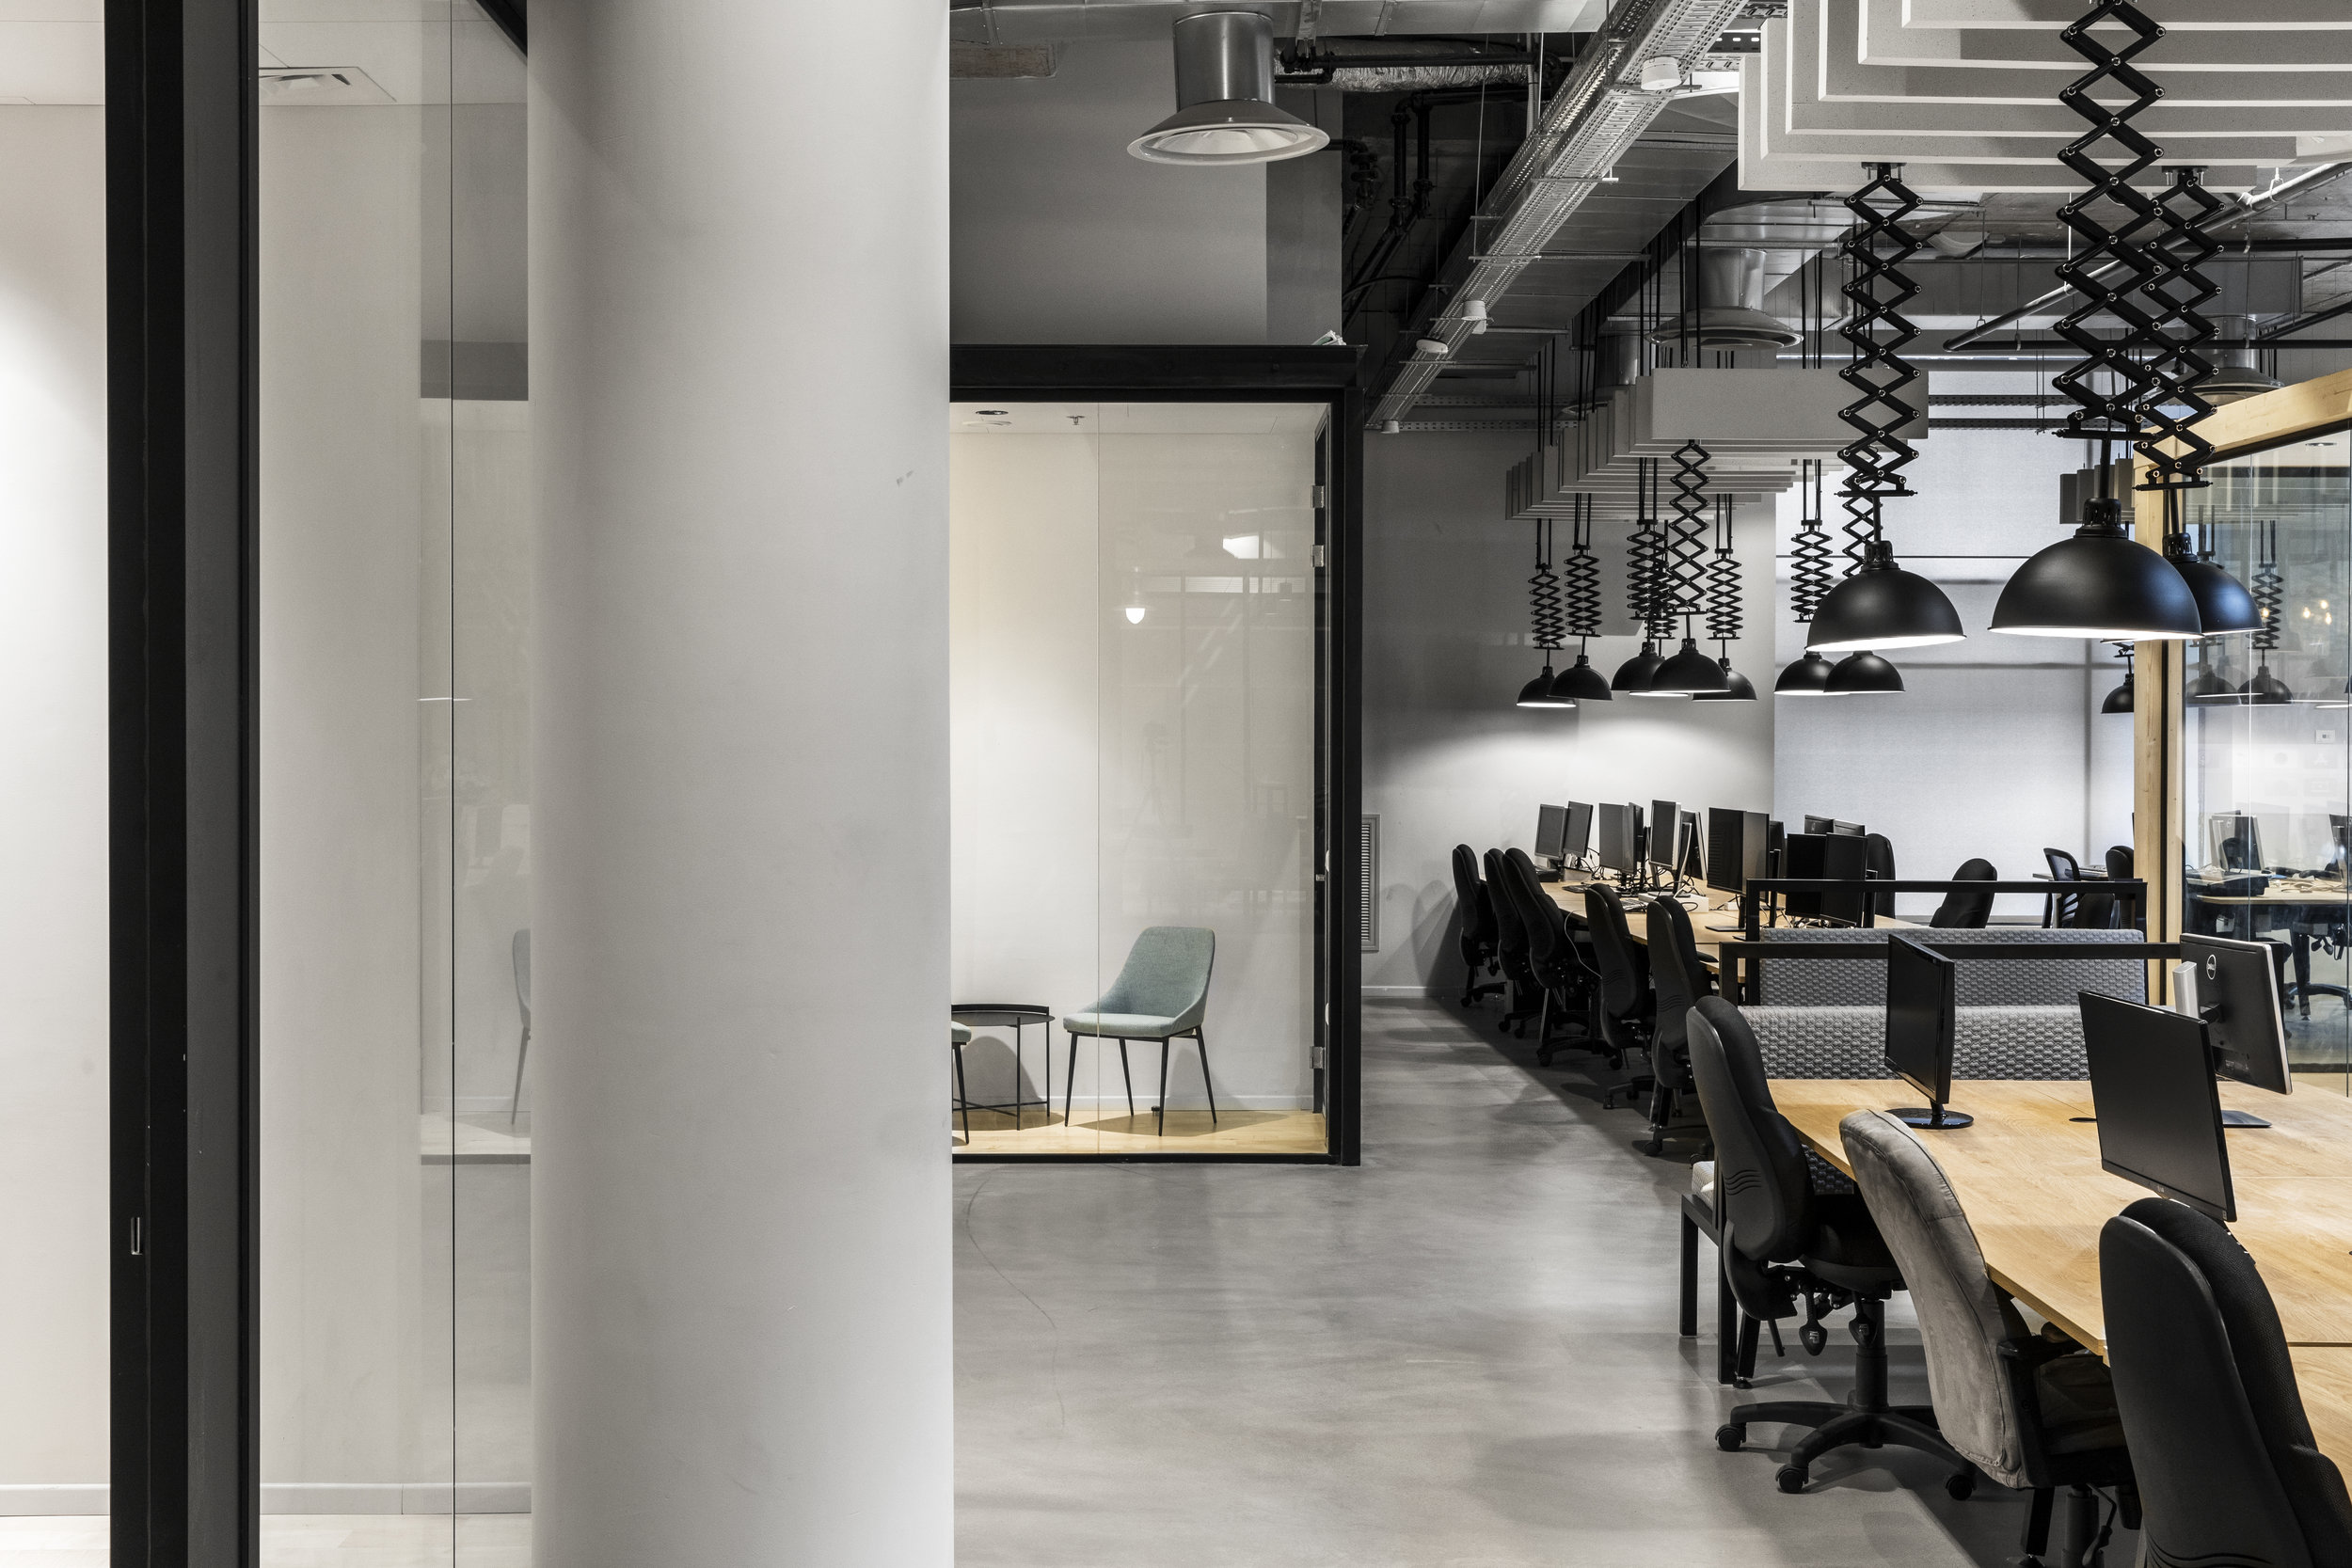 031_סטודיו רואי דוד - ROY DAVID ARCHITECTURE - JOYTUNES OFFICES.jpg